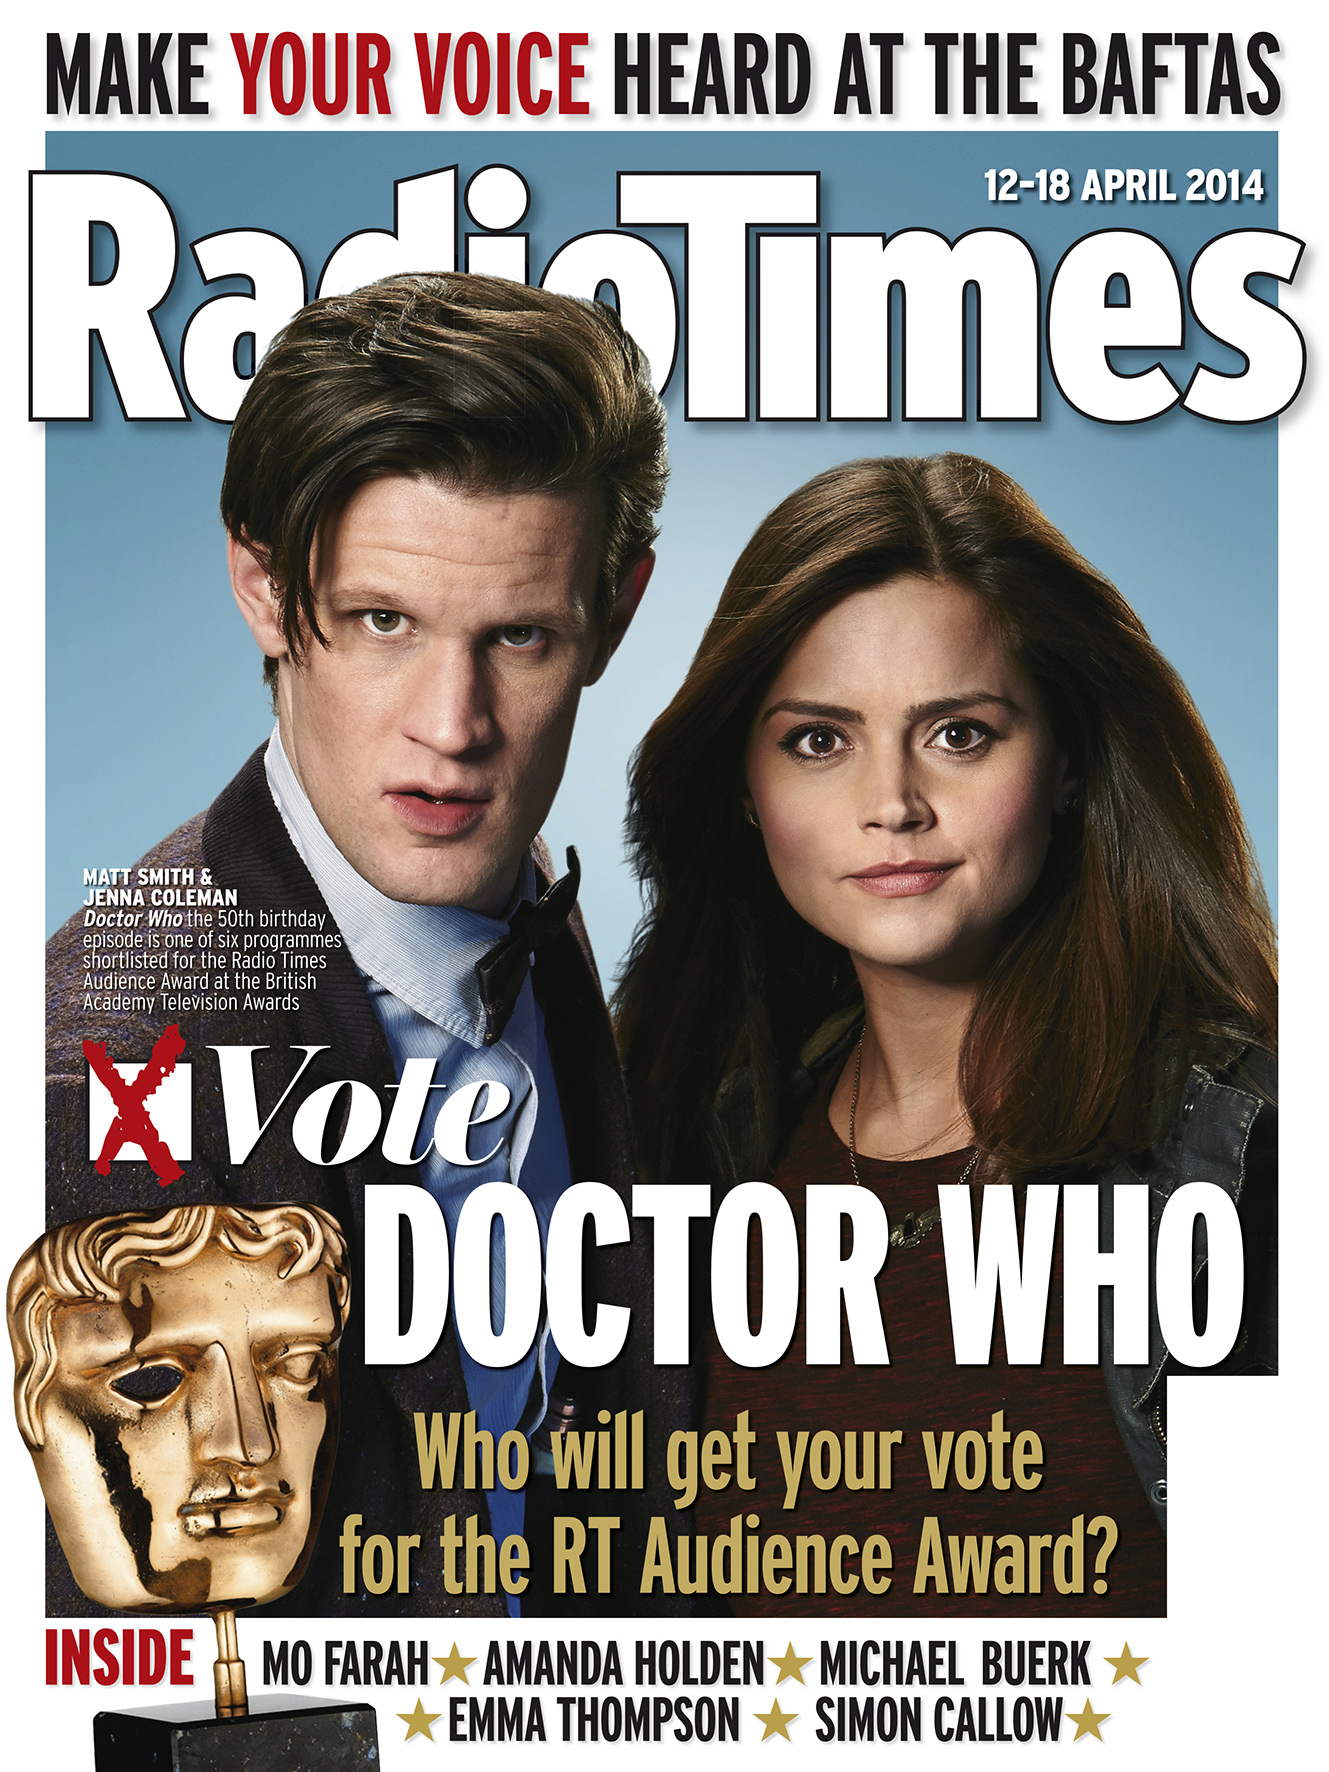 Radio Times (12-18 Apr 2014) - Doctor Who cover (Credit: Radio Times)